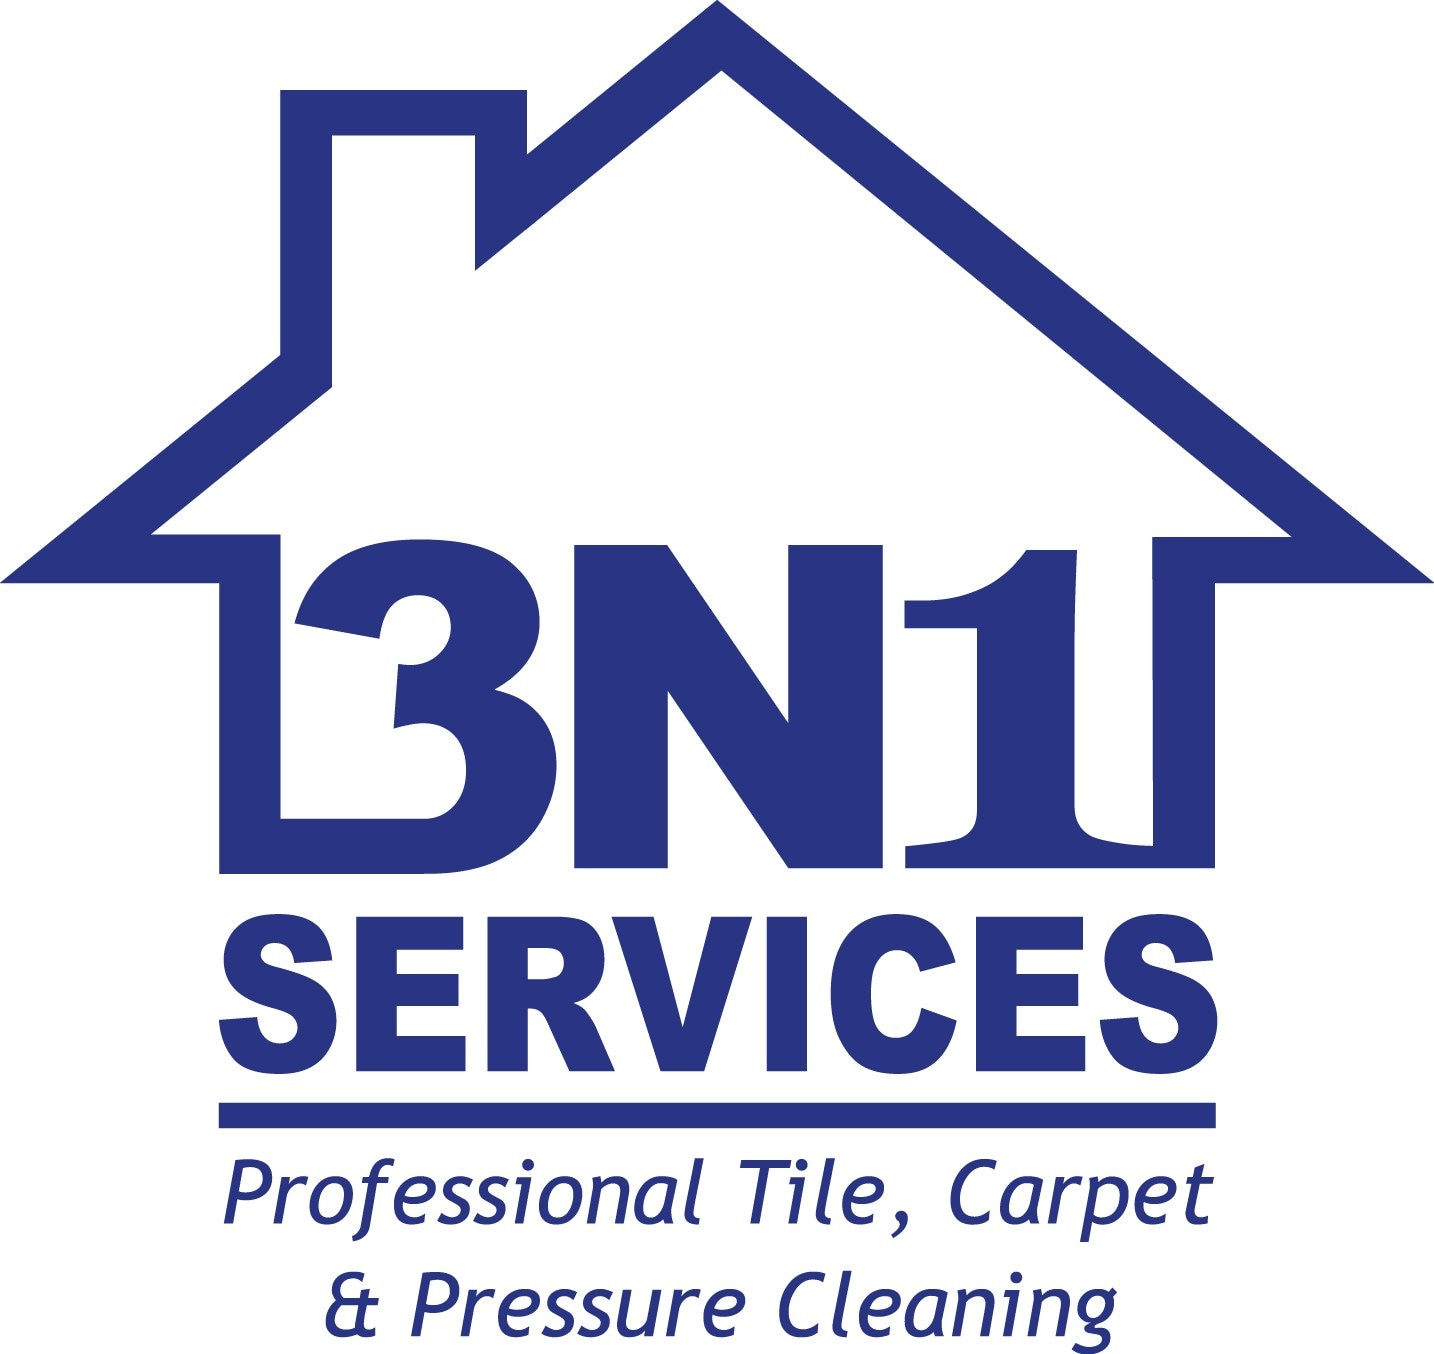 3N1 Services